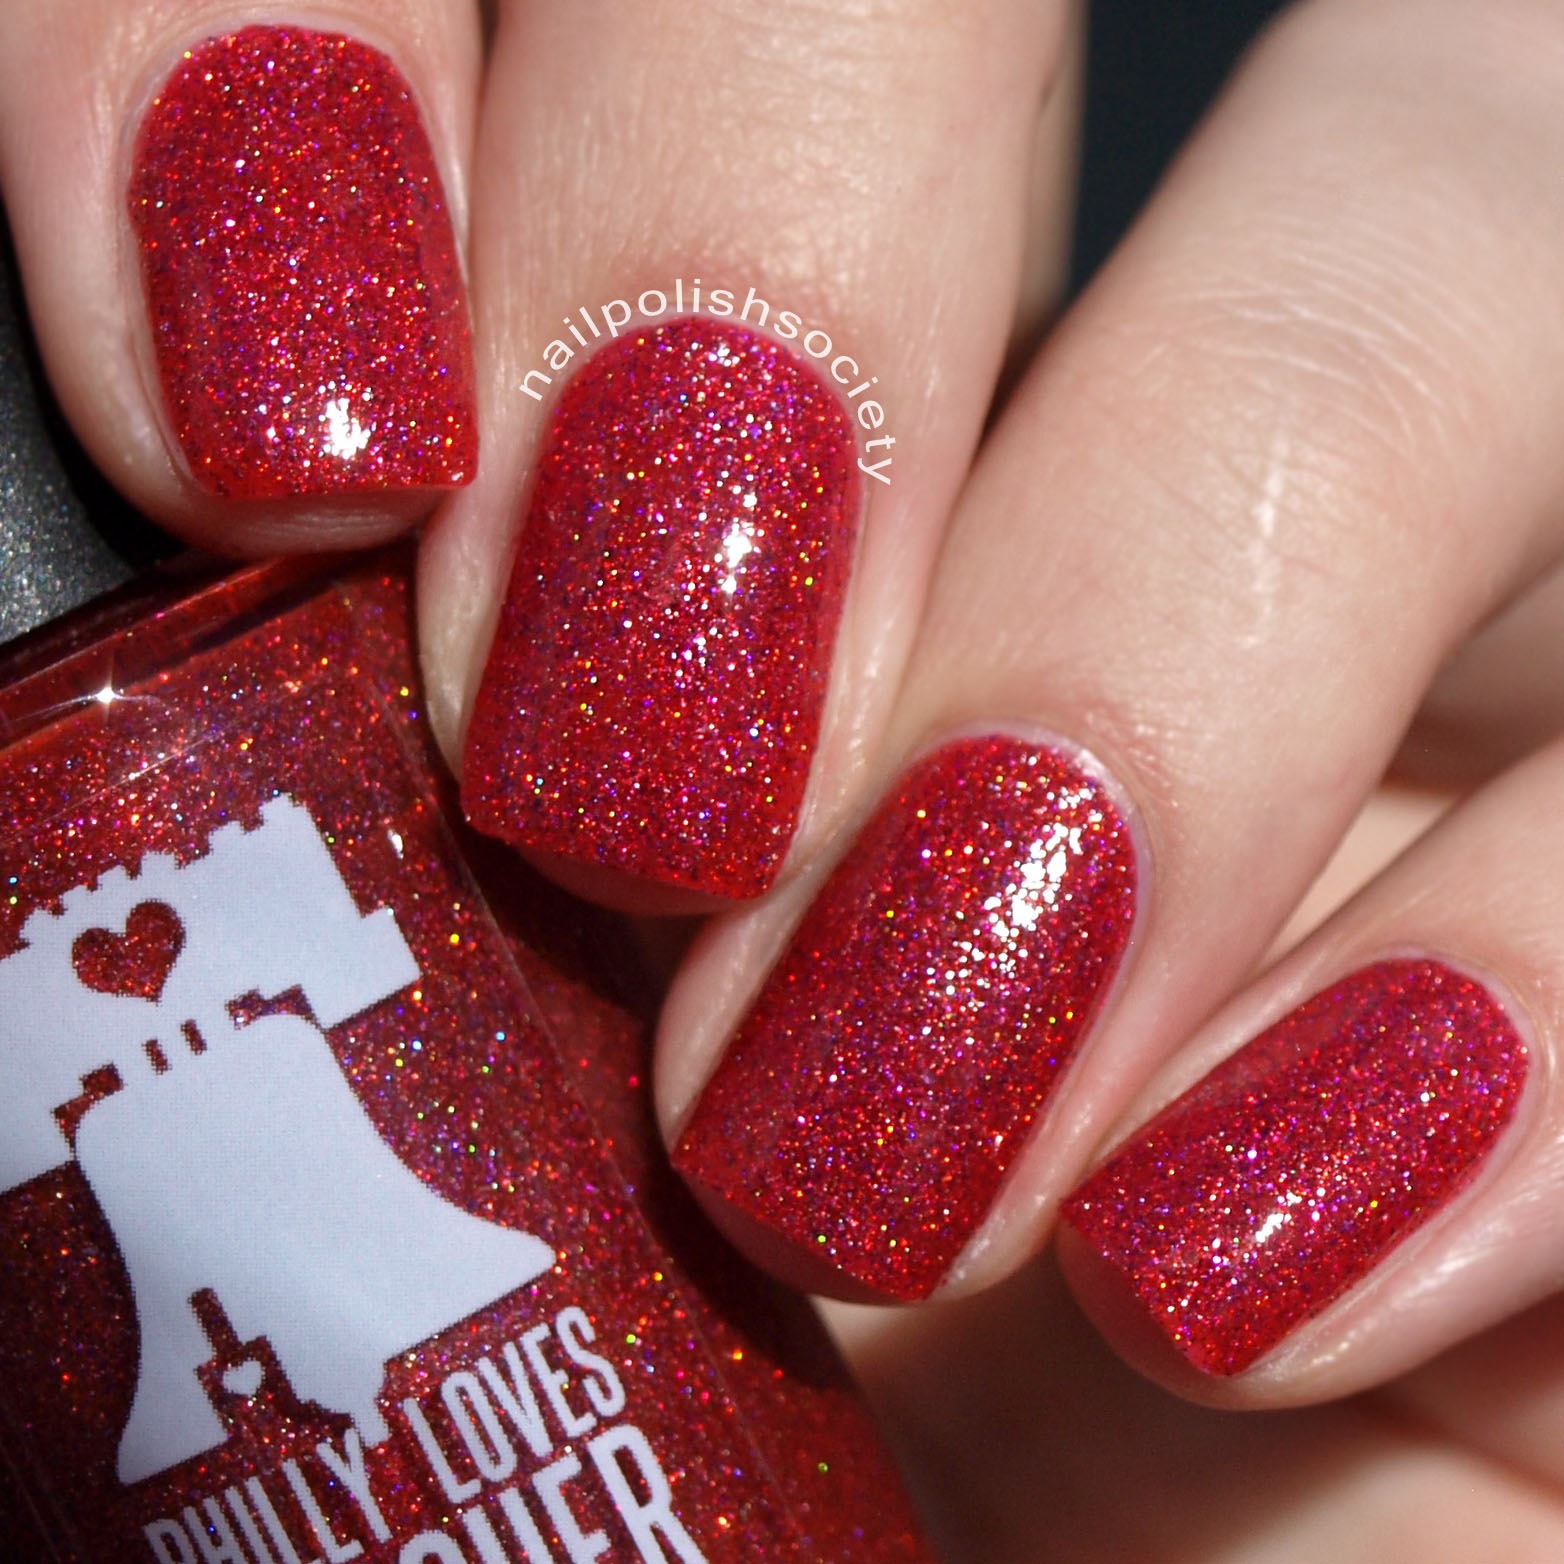 Nail Polish Society: Philly Loves Lacquer The Dirty 30 Birthday Trio